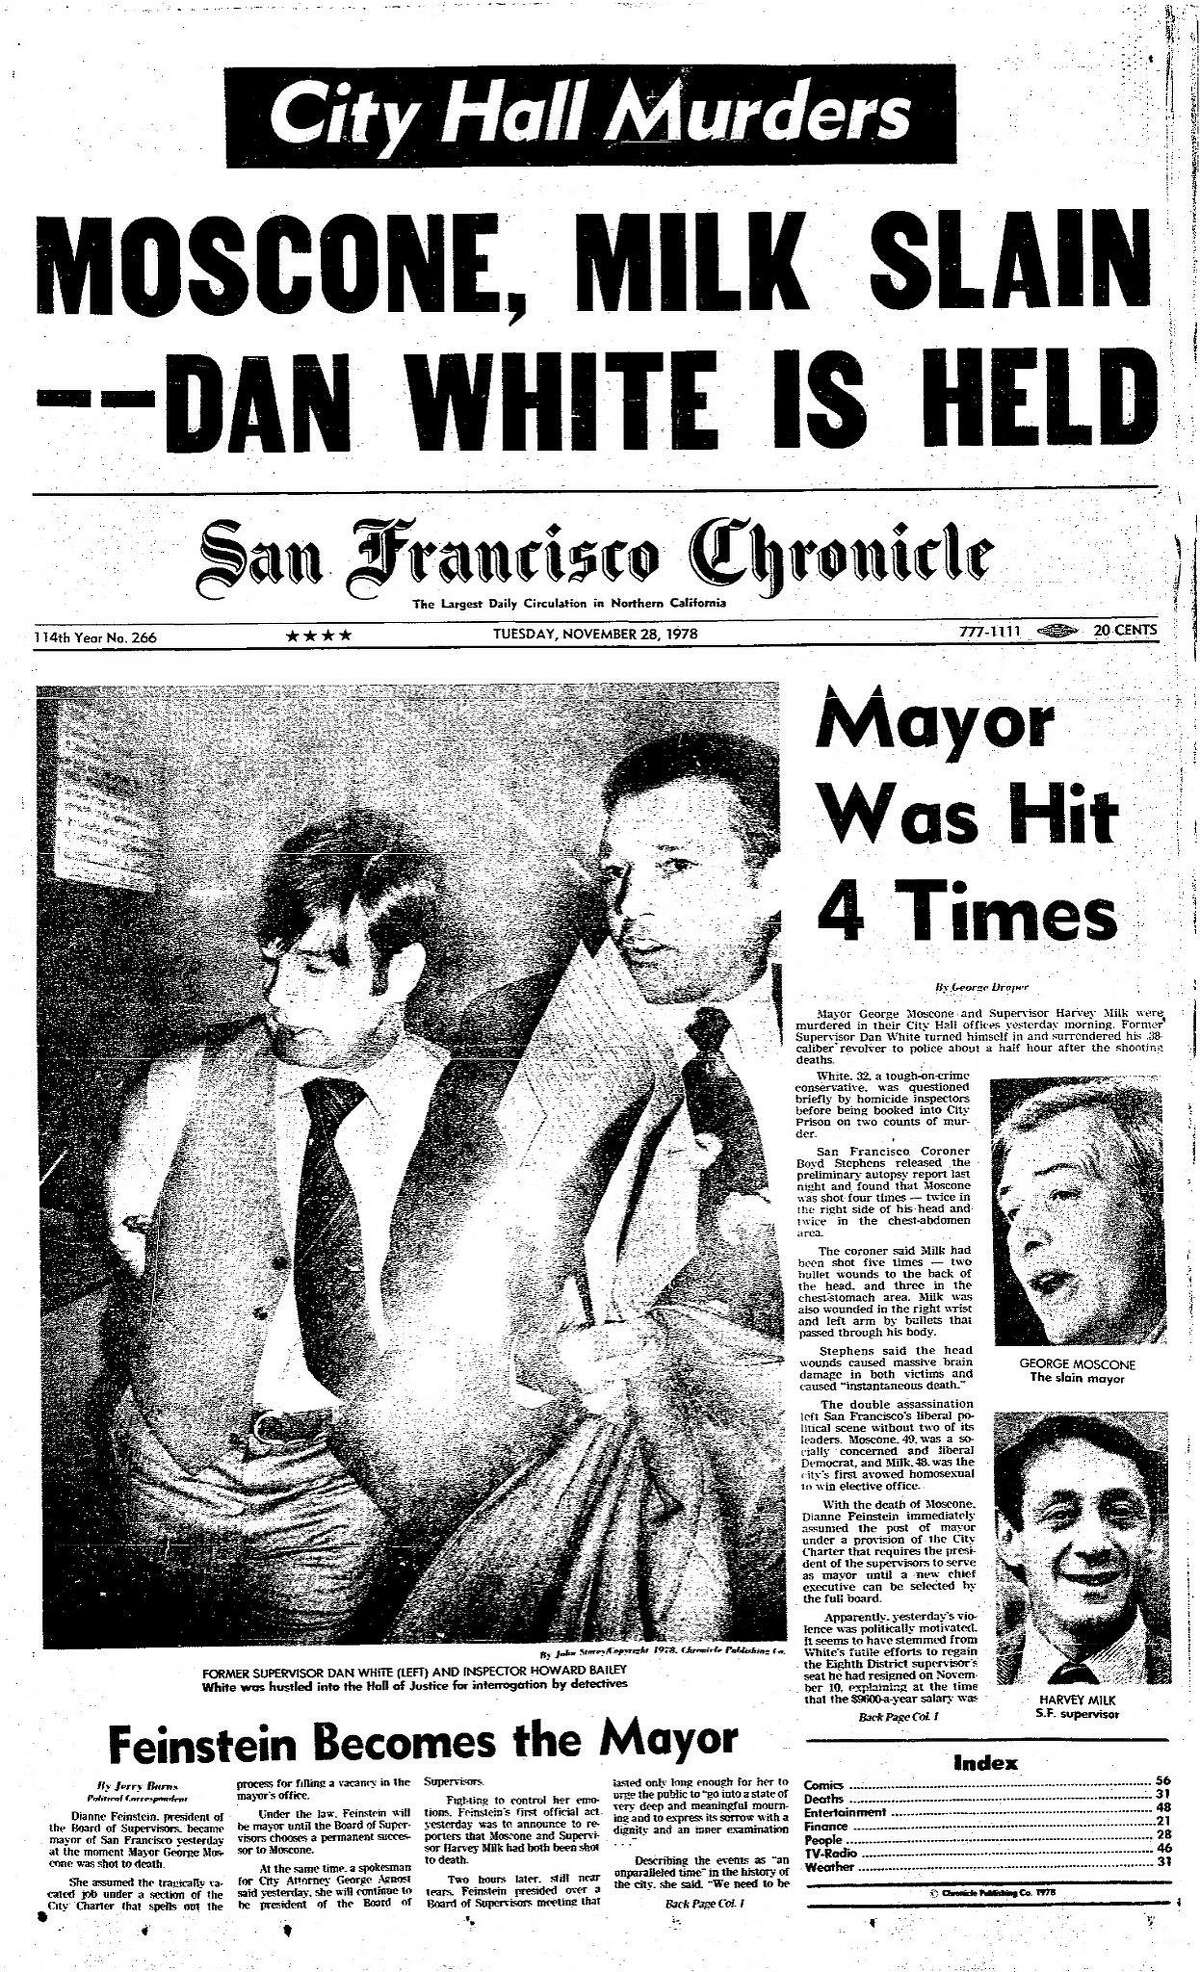 Historic Chronicle Front Page November 28, 1978 San Francisco Mayor George Moscone and Supervisor Harvey Milk are murdered at City Hall by Supervisor Dan White Chron365, Chroncover